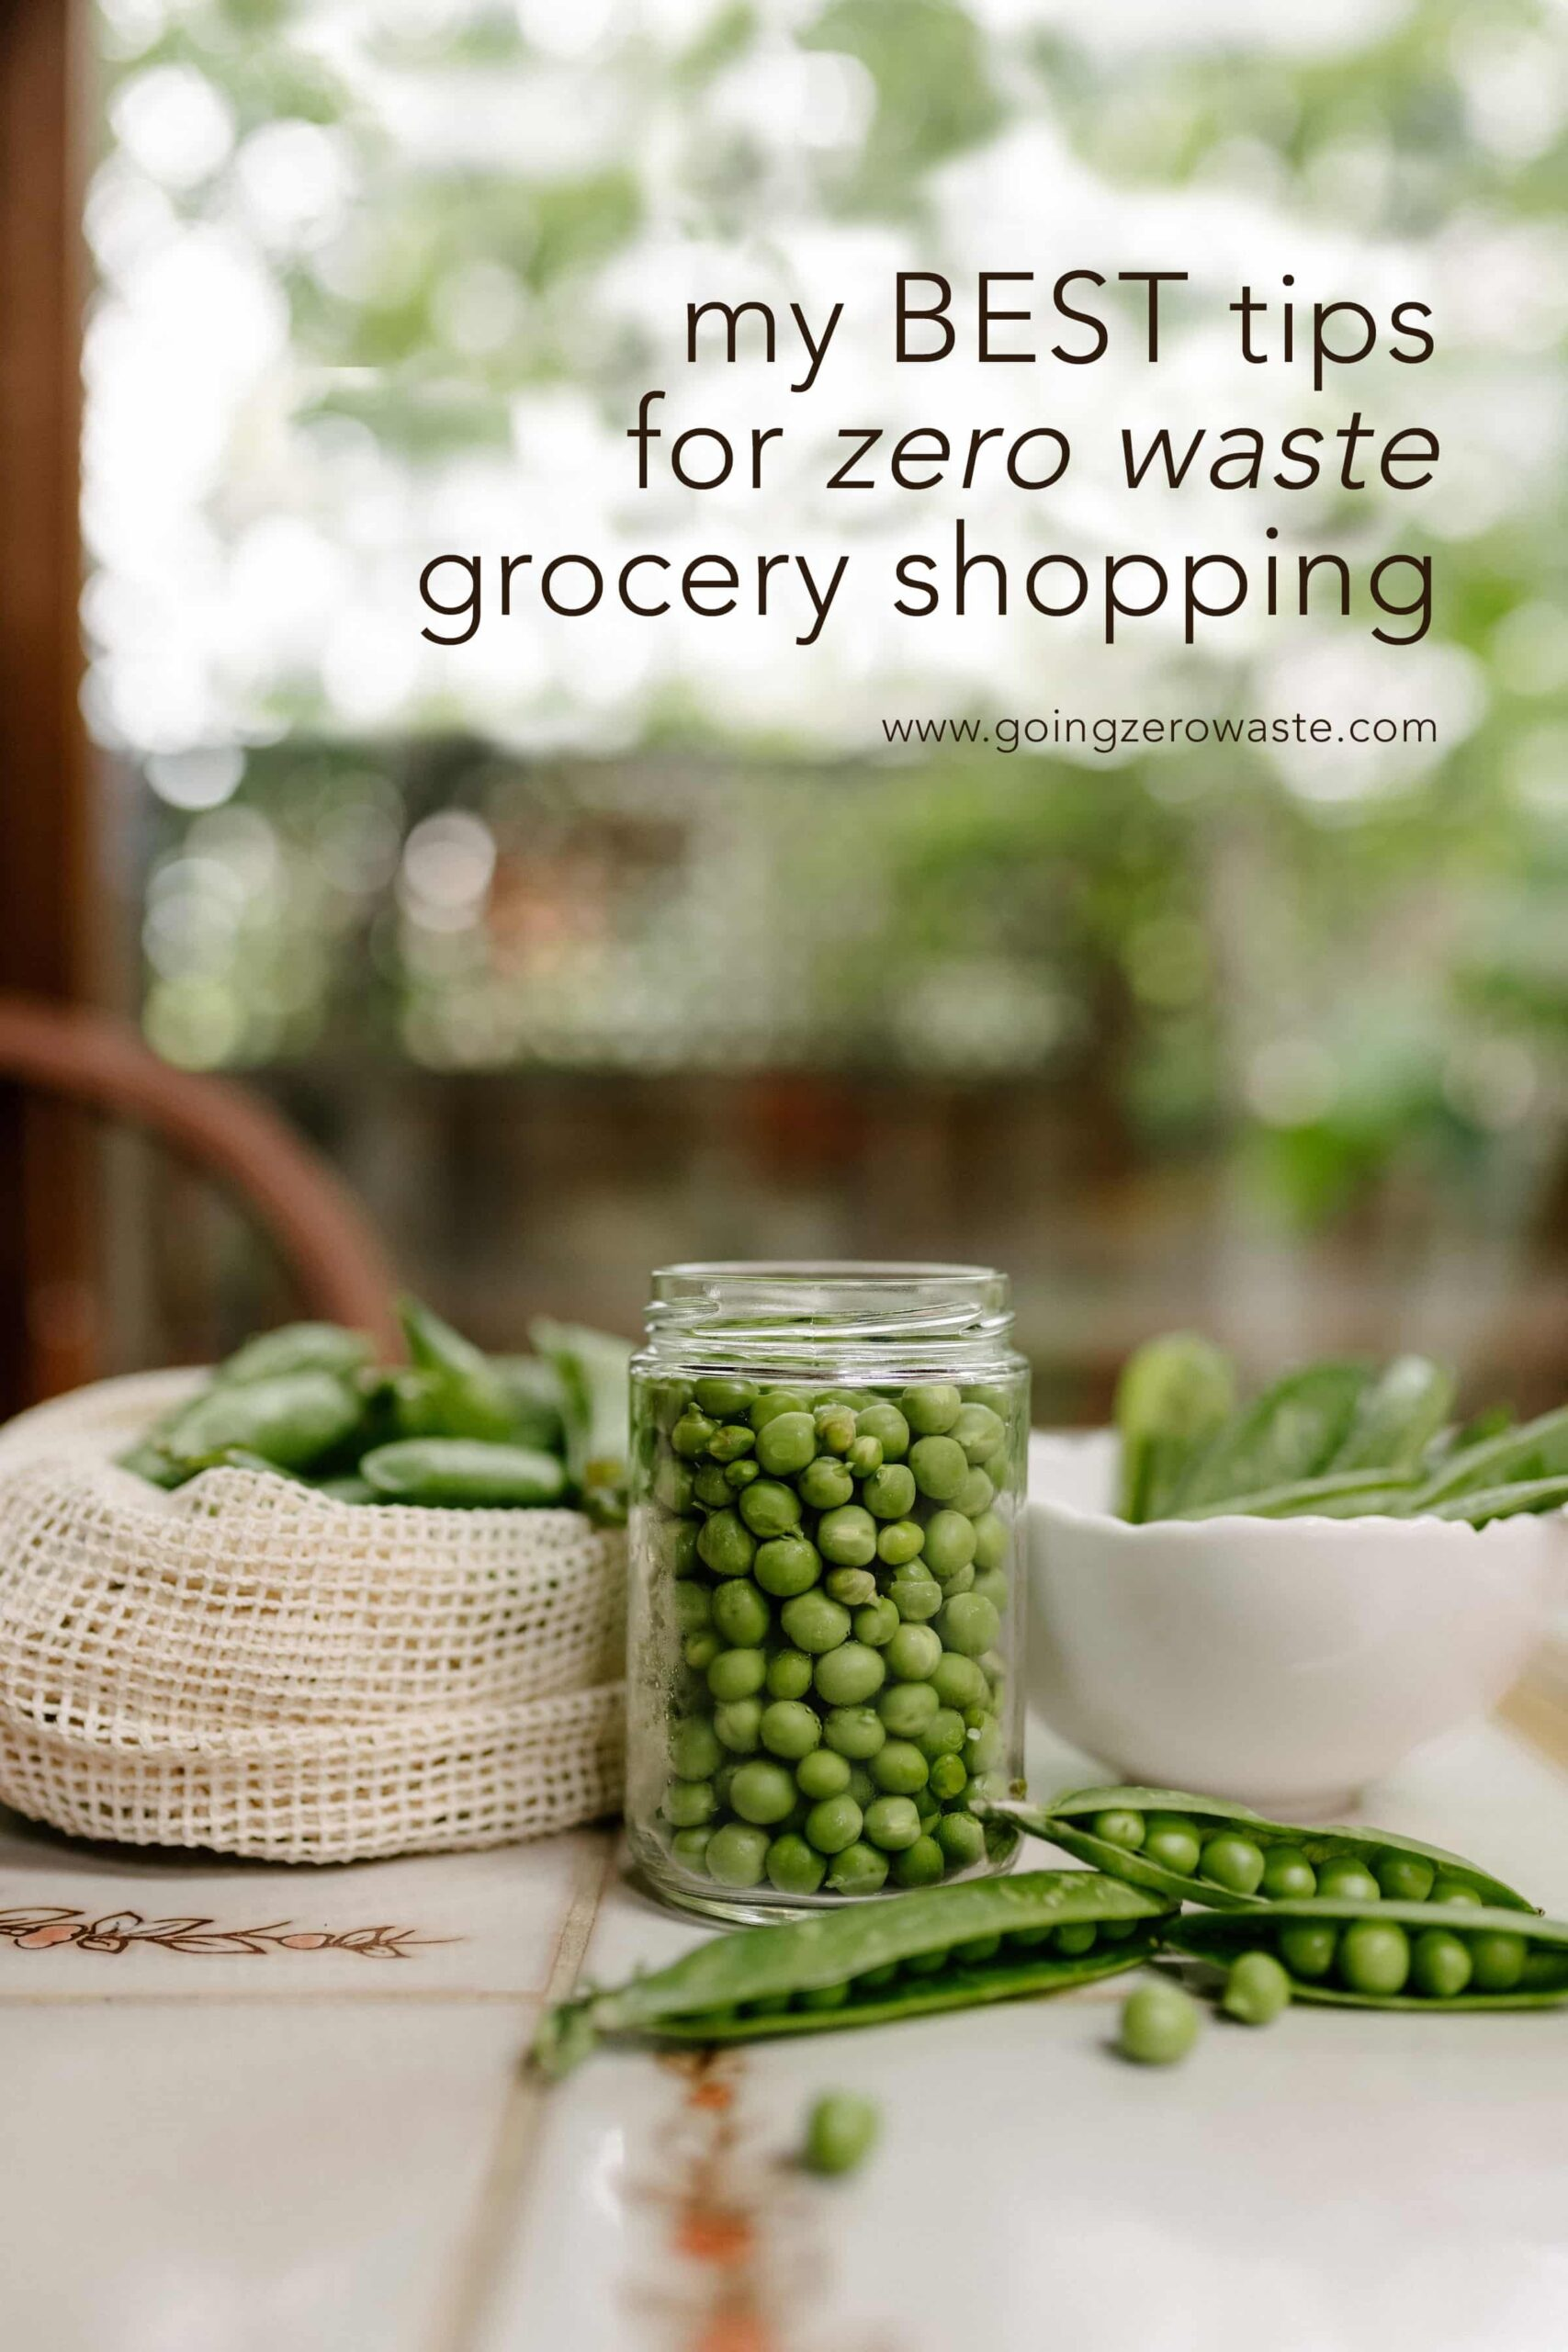 My BEST Tips for Zero Waste Grocery Shopping